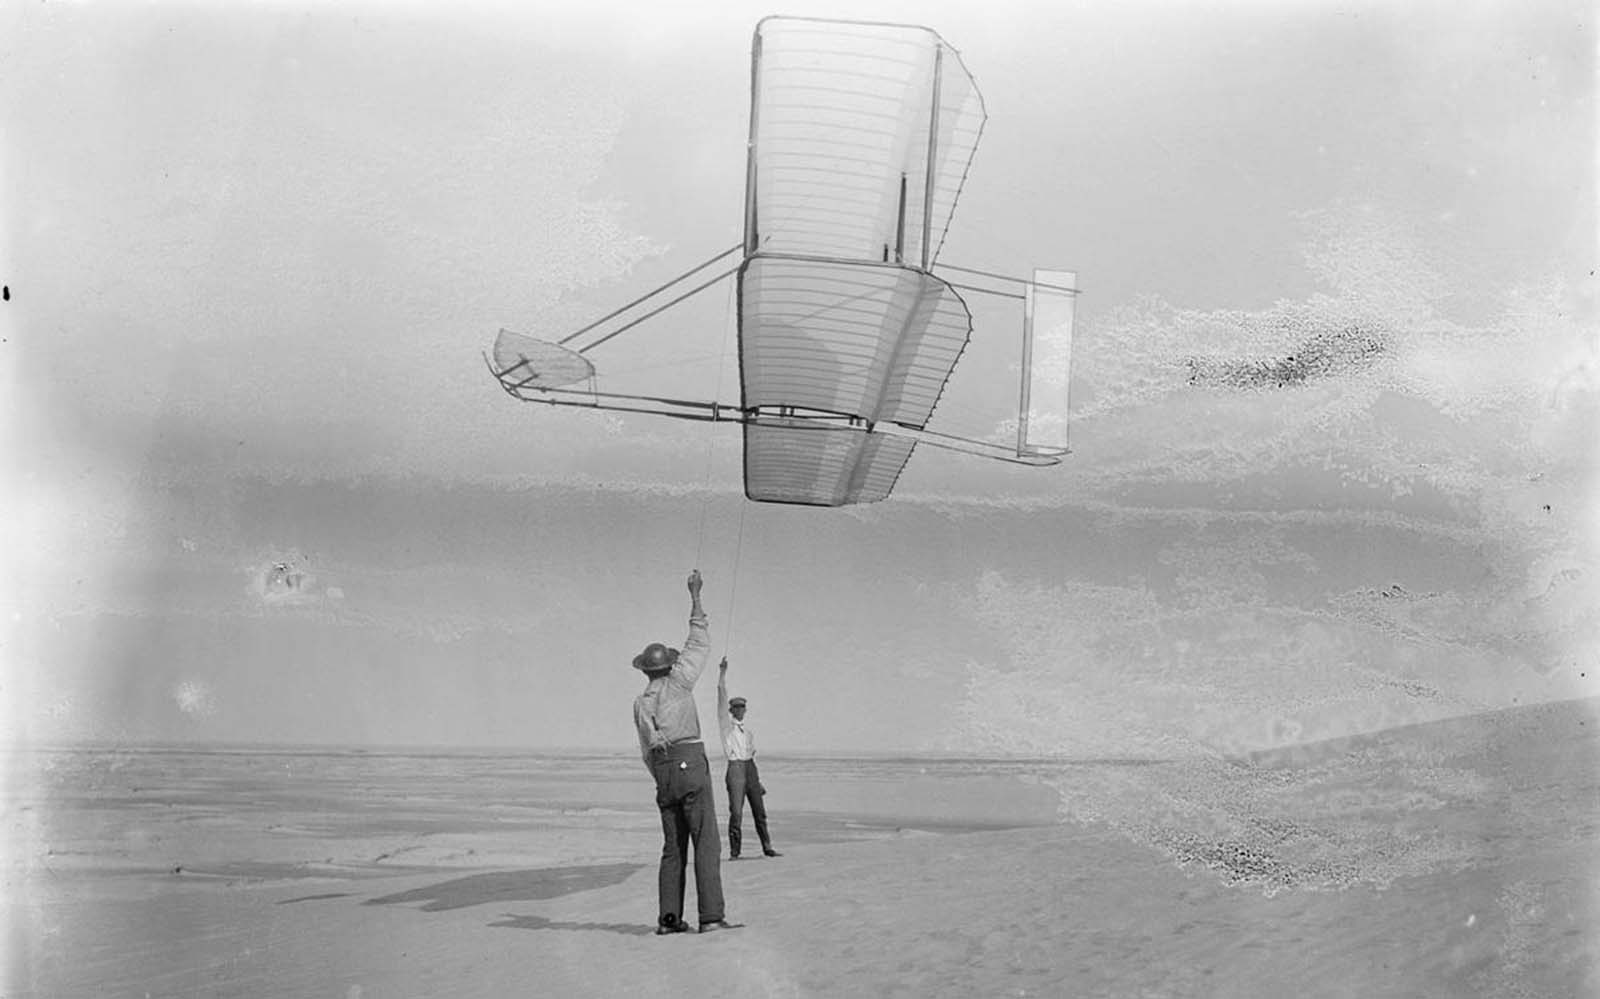 Side view of Dan Tate, left, and Wilbur Wright, right, flying the 1902 glider as a kite, on September 19, 1902.